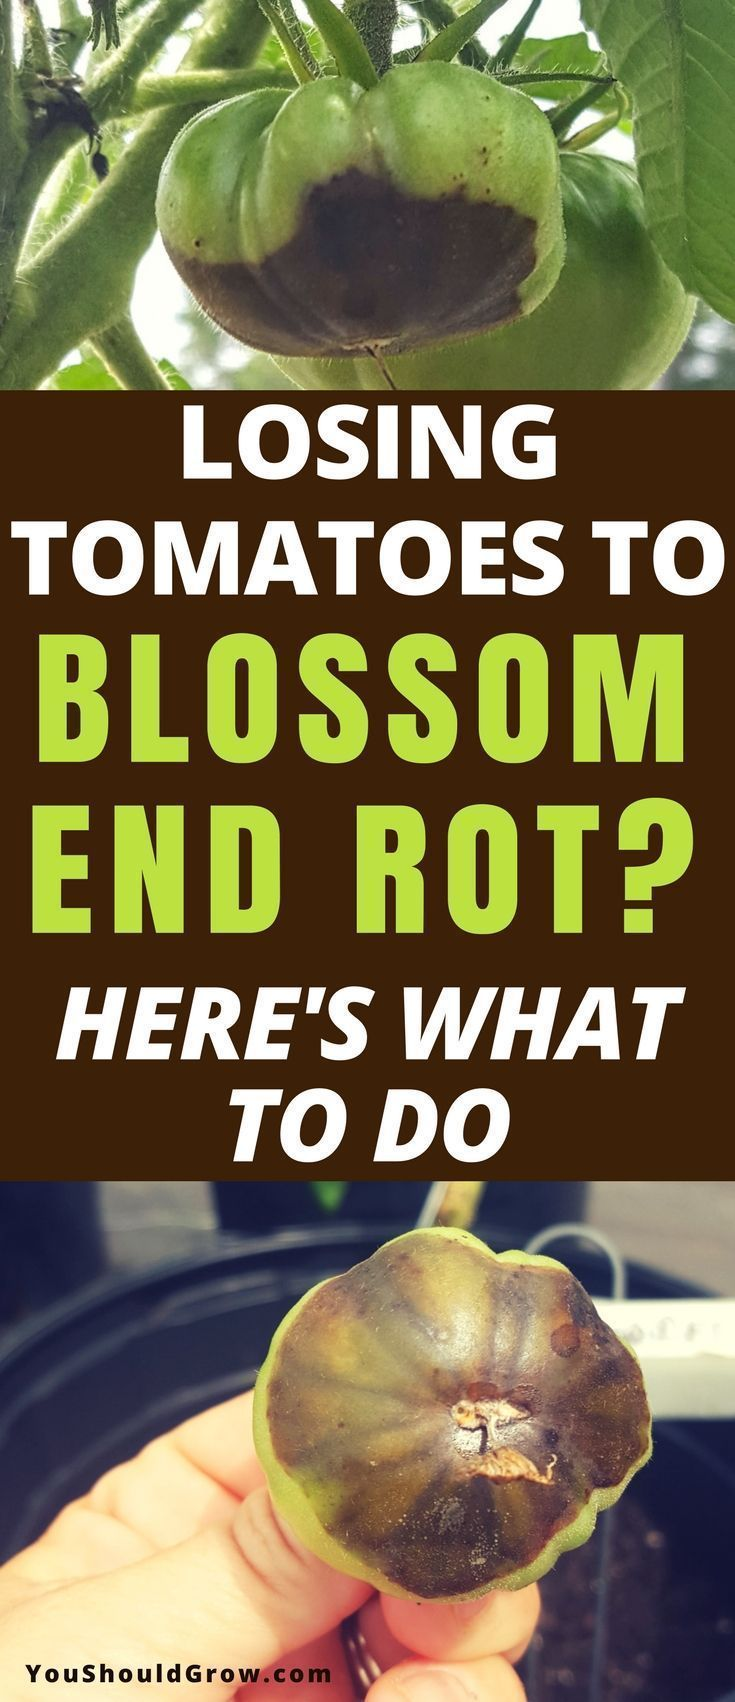 Growing tomatoes: How to deal with blossom end rot. Gardening should be fun! Don't stress over losing homegrown tomatoes anymore. Find out what treatments work and what doesn't. Gardening For Beginners | Organic Gardening | Backyard Vegetable Gardens #gardeningtips via @youshouldgrow #organicgardening #tomatosgardening